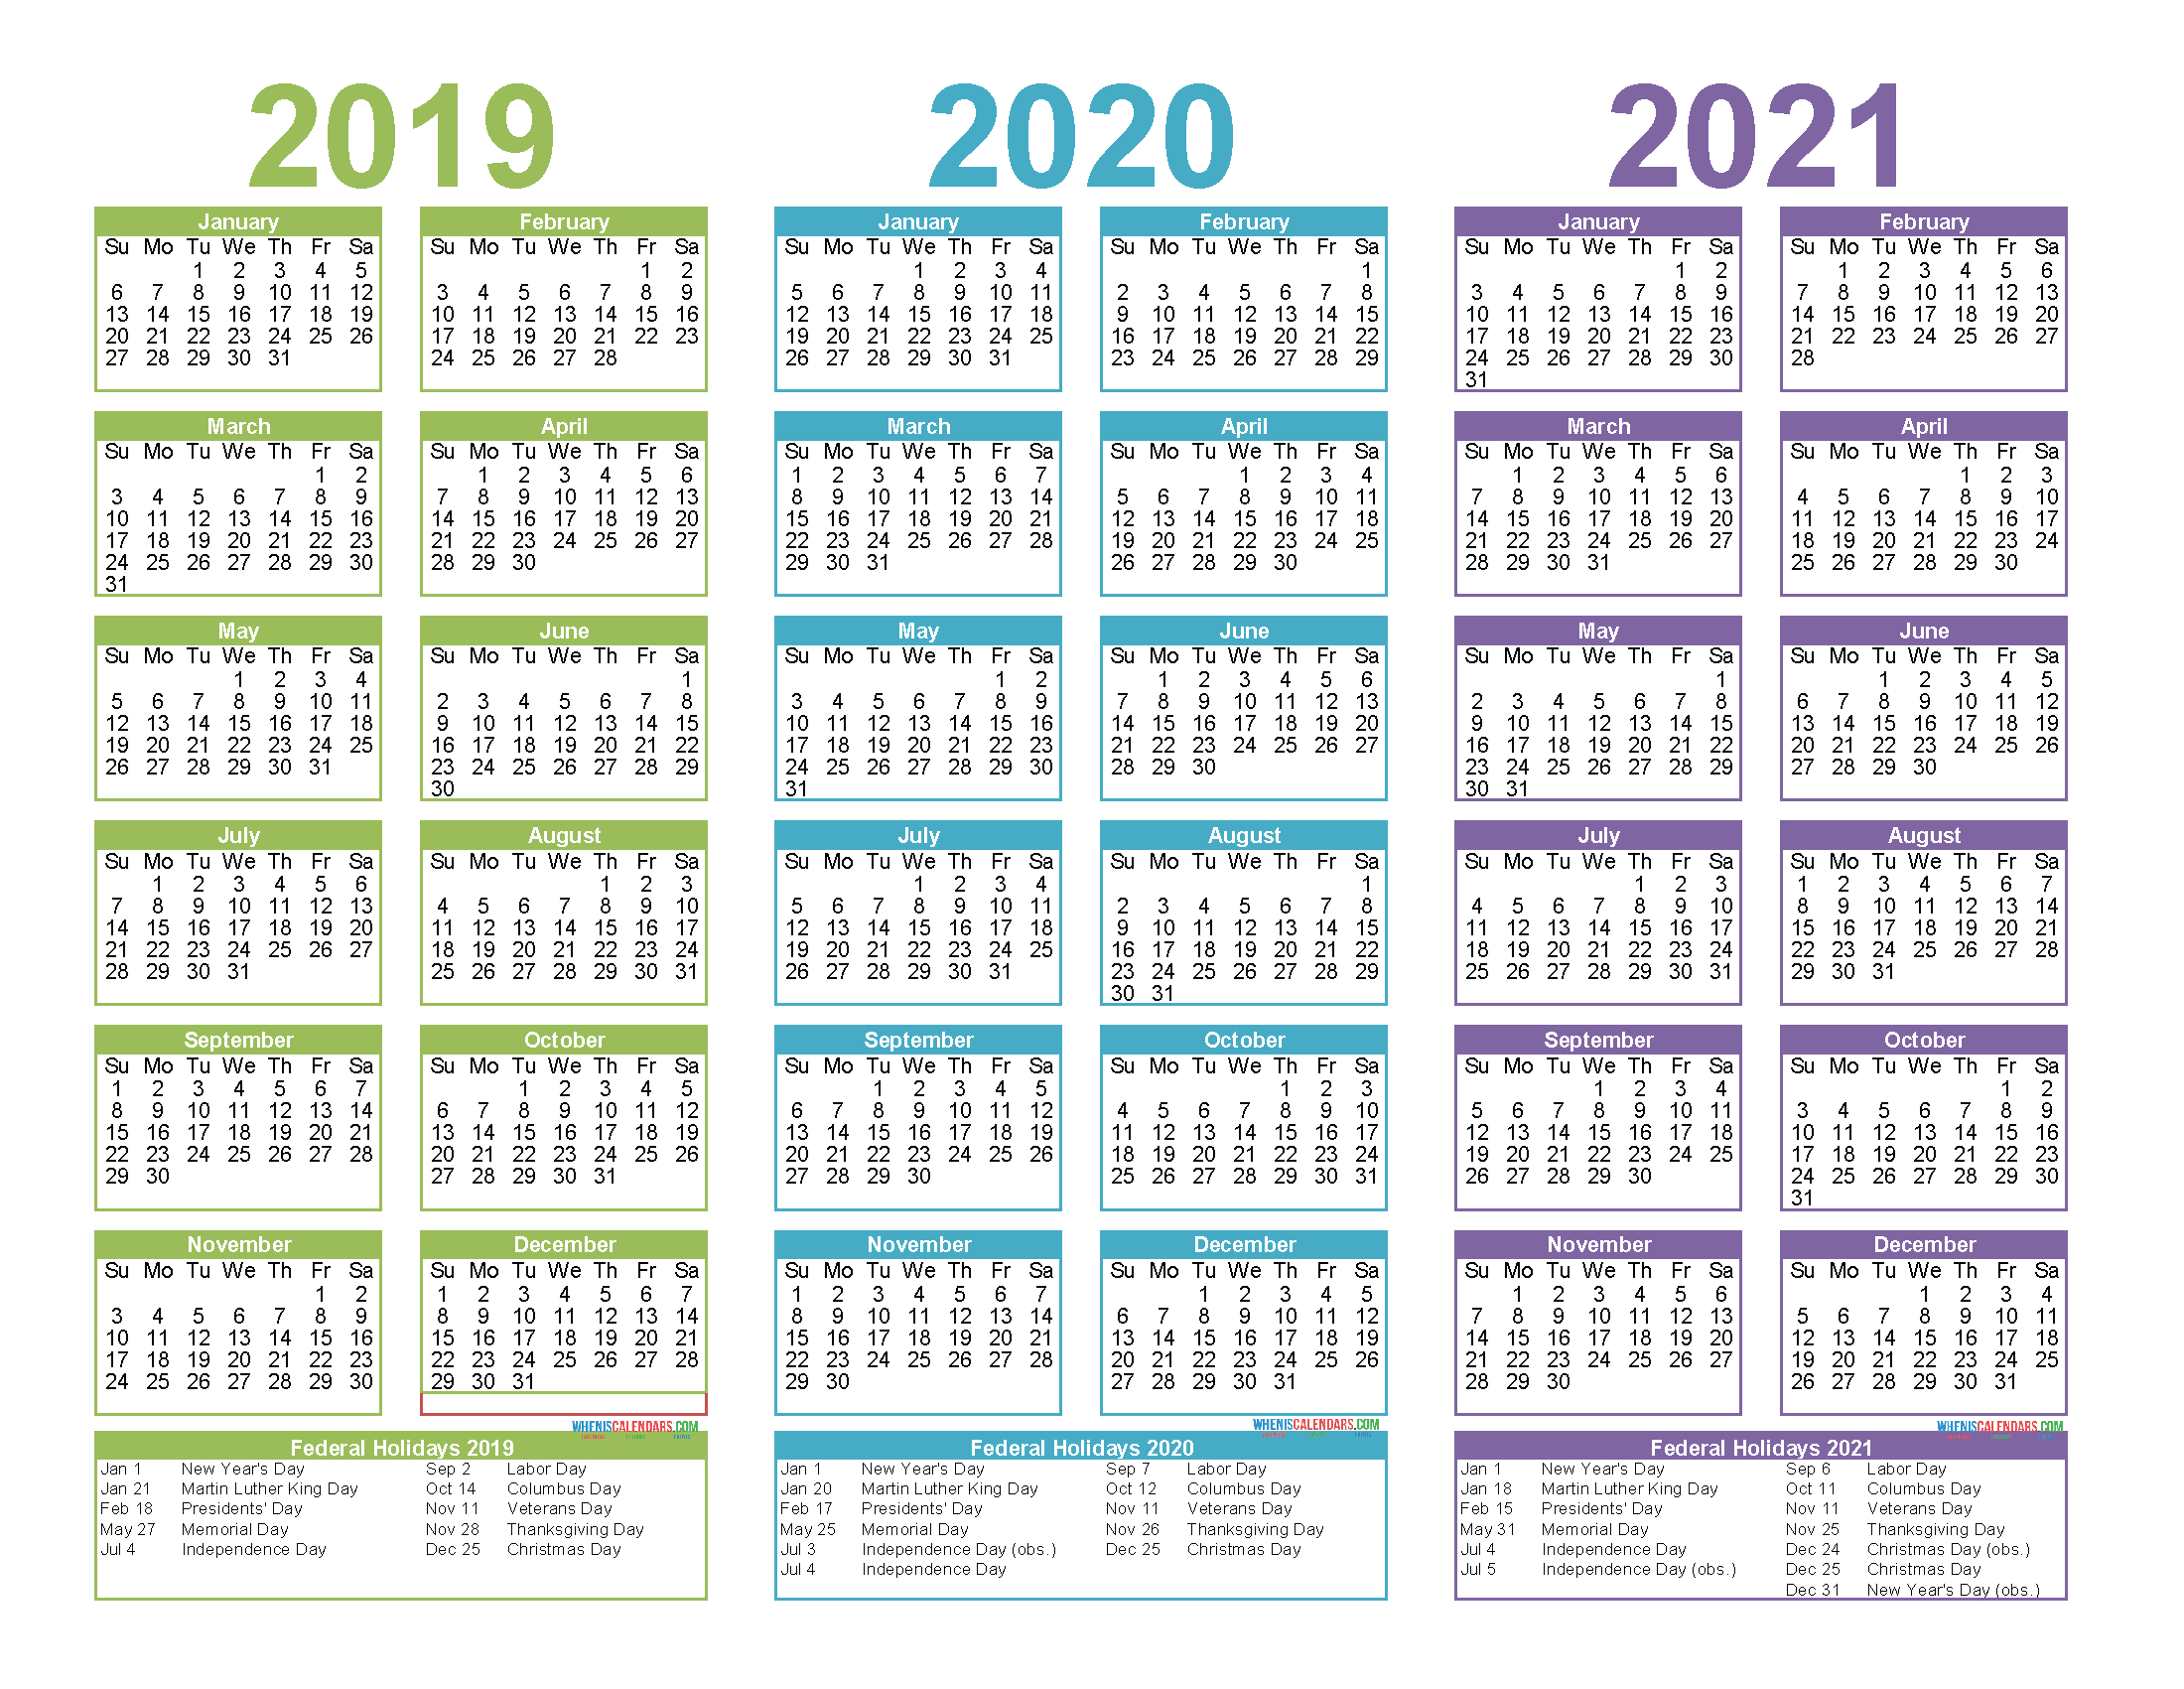 2019 To 2021 3 Year Calendar Printable Free Pdf, Word, Image intended for 3 Year Calendar Printable